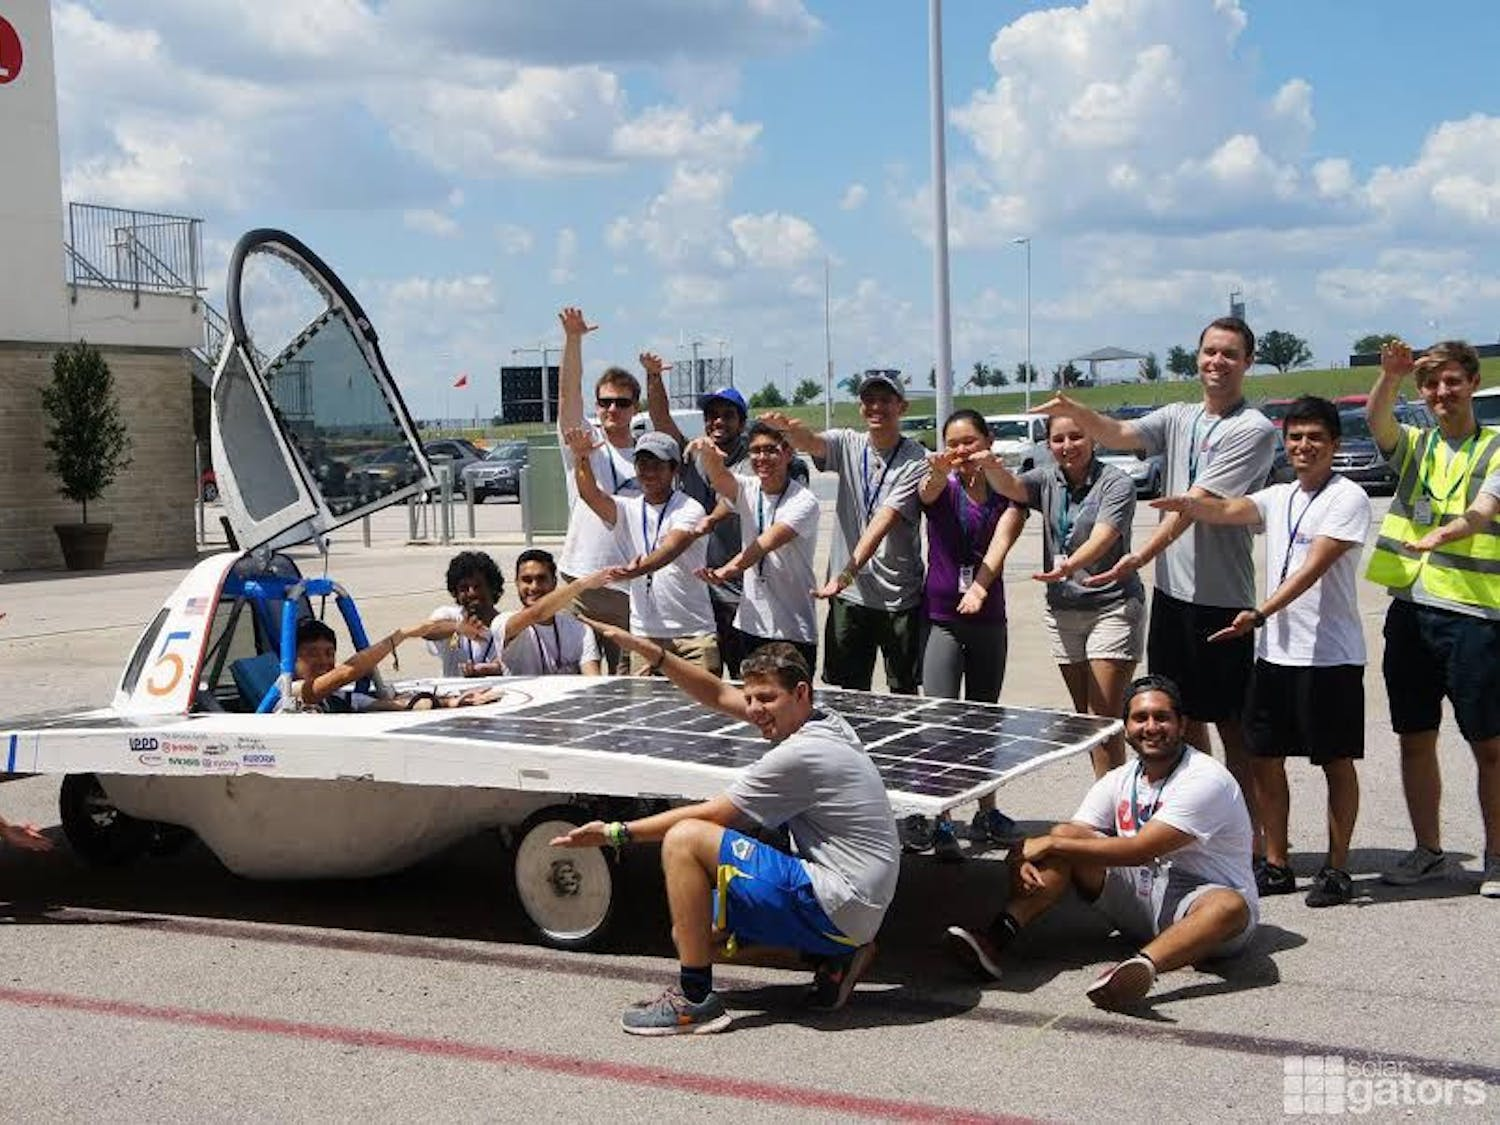 The Solar Gators' car got onto the competition track just three minutes before the cutoff for the final race. Solar Gators president Ananda Sundararaman said when they were able to scale the first hill on the track, all the universities that helped the team burst into cheers.